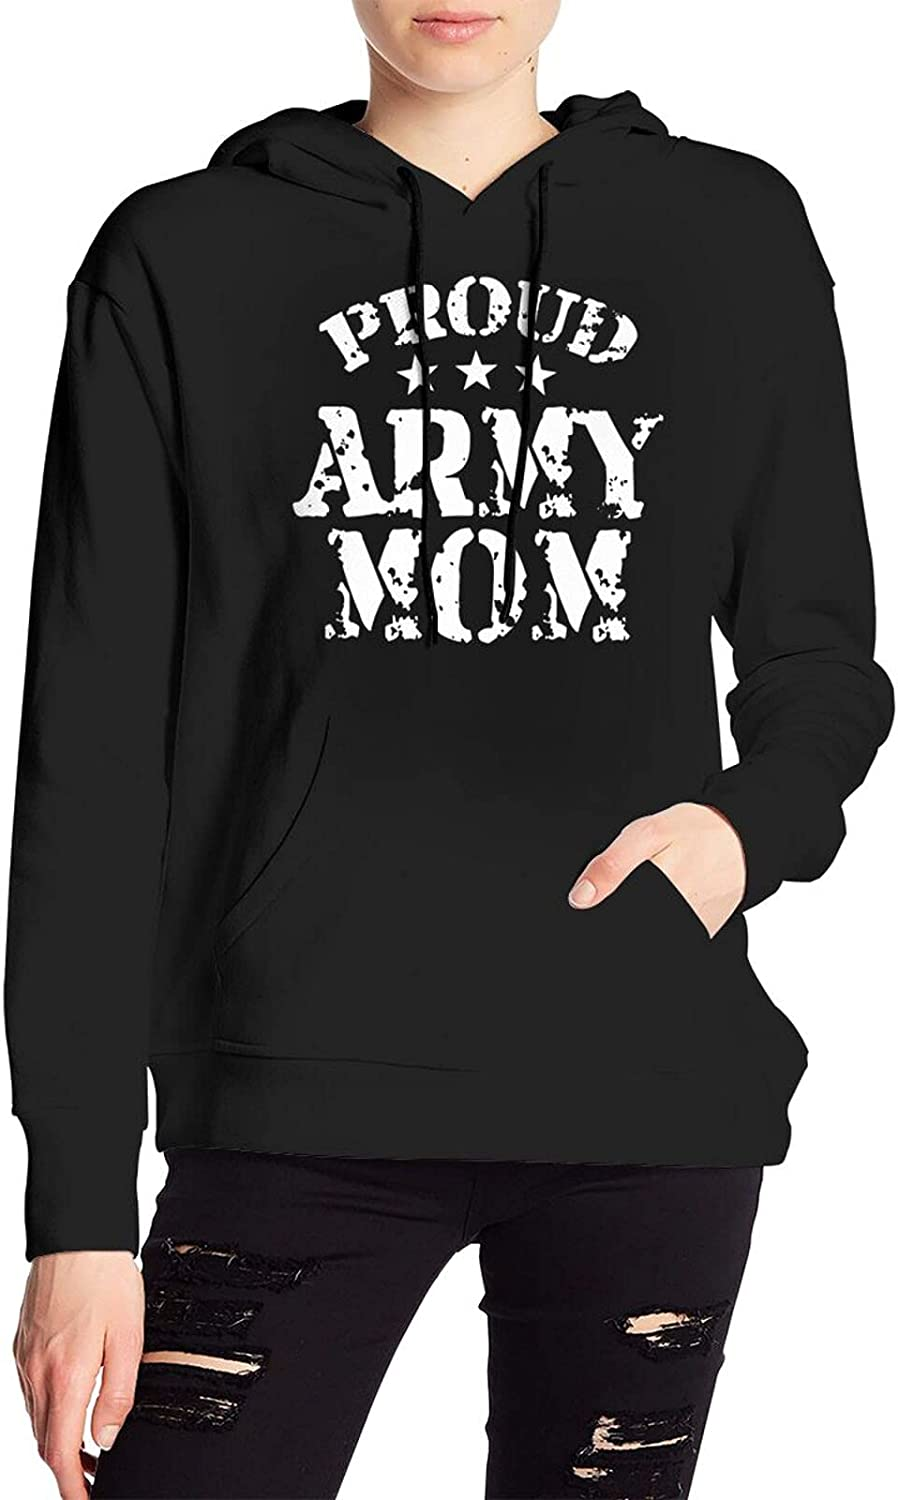 Proud Army Mom Sweater Casual Hooded Sweatshirt With Pocket For Men'S Women